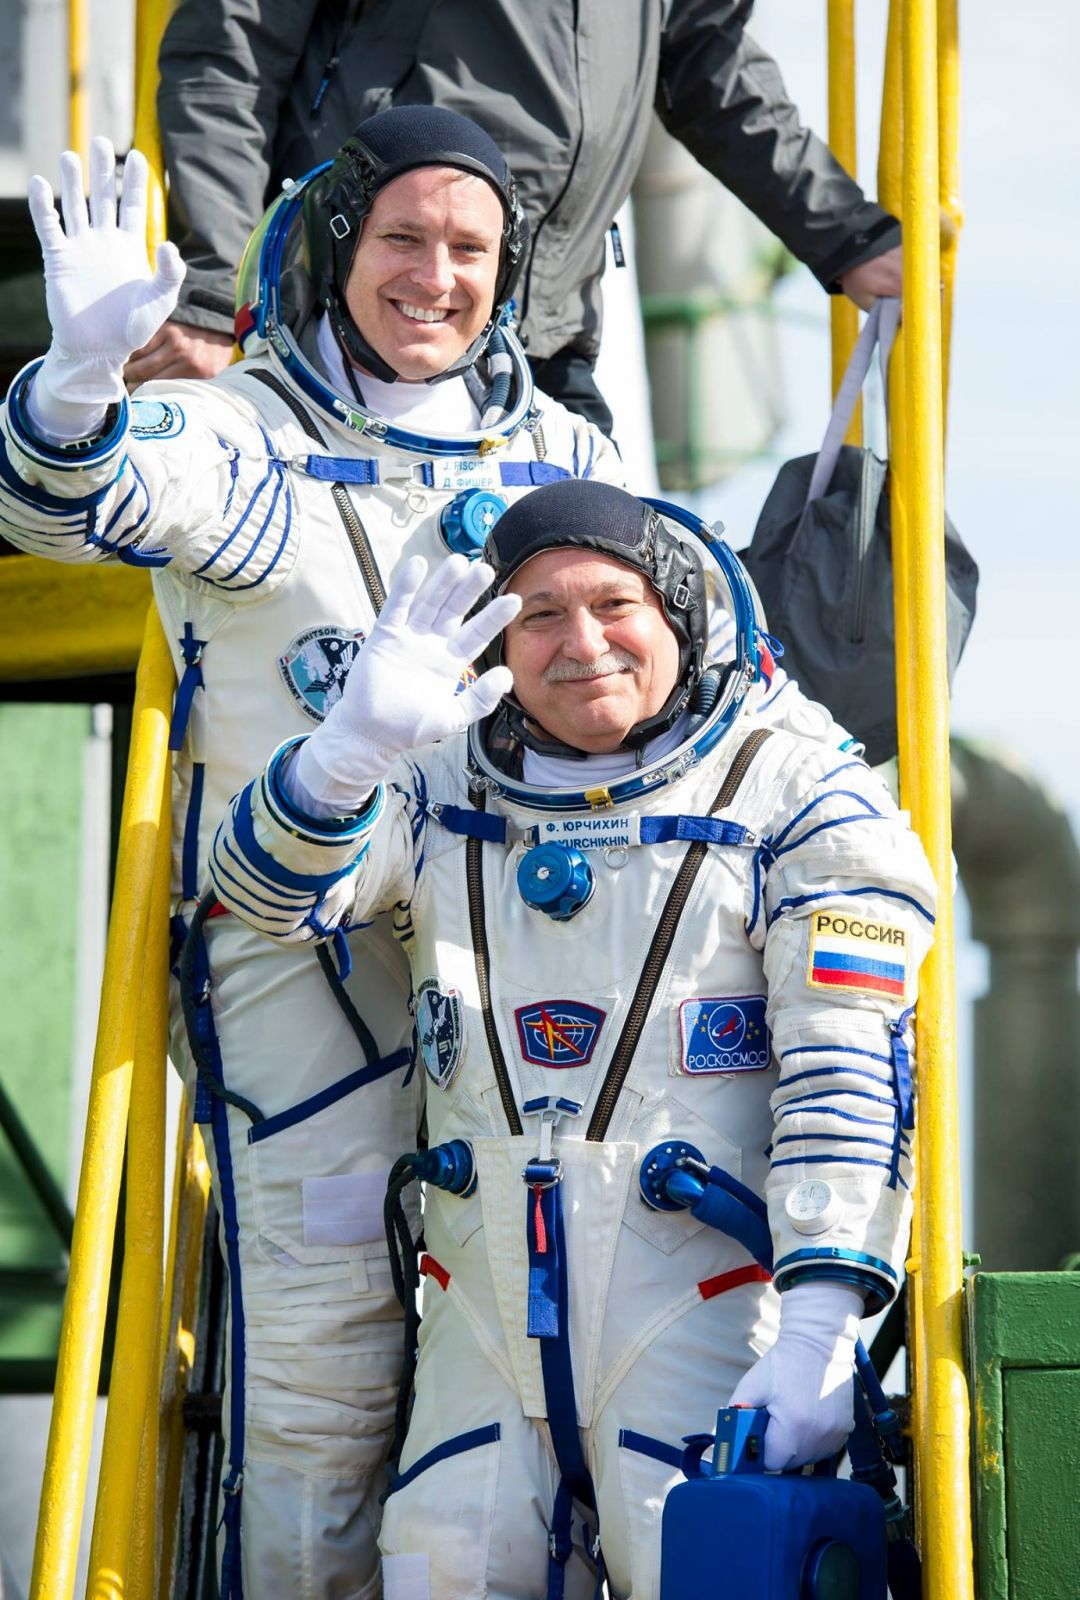 Expedition 51 crew launch